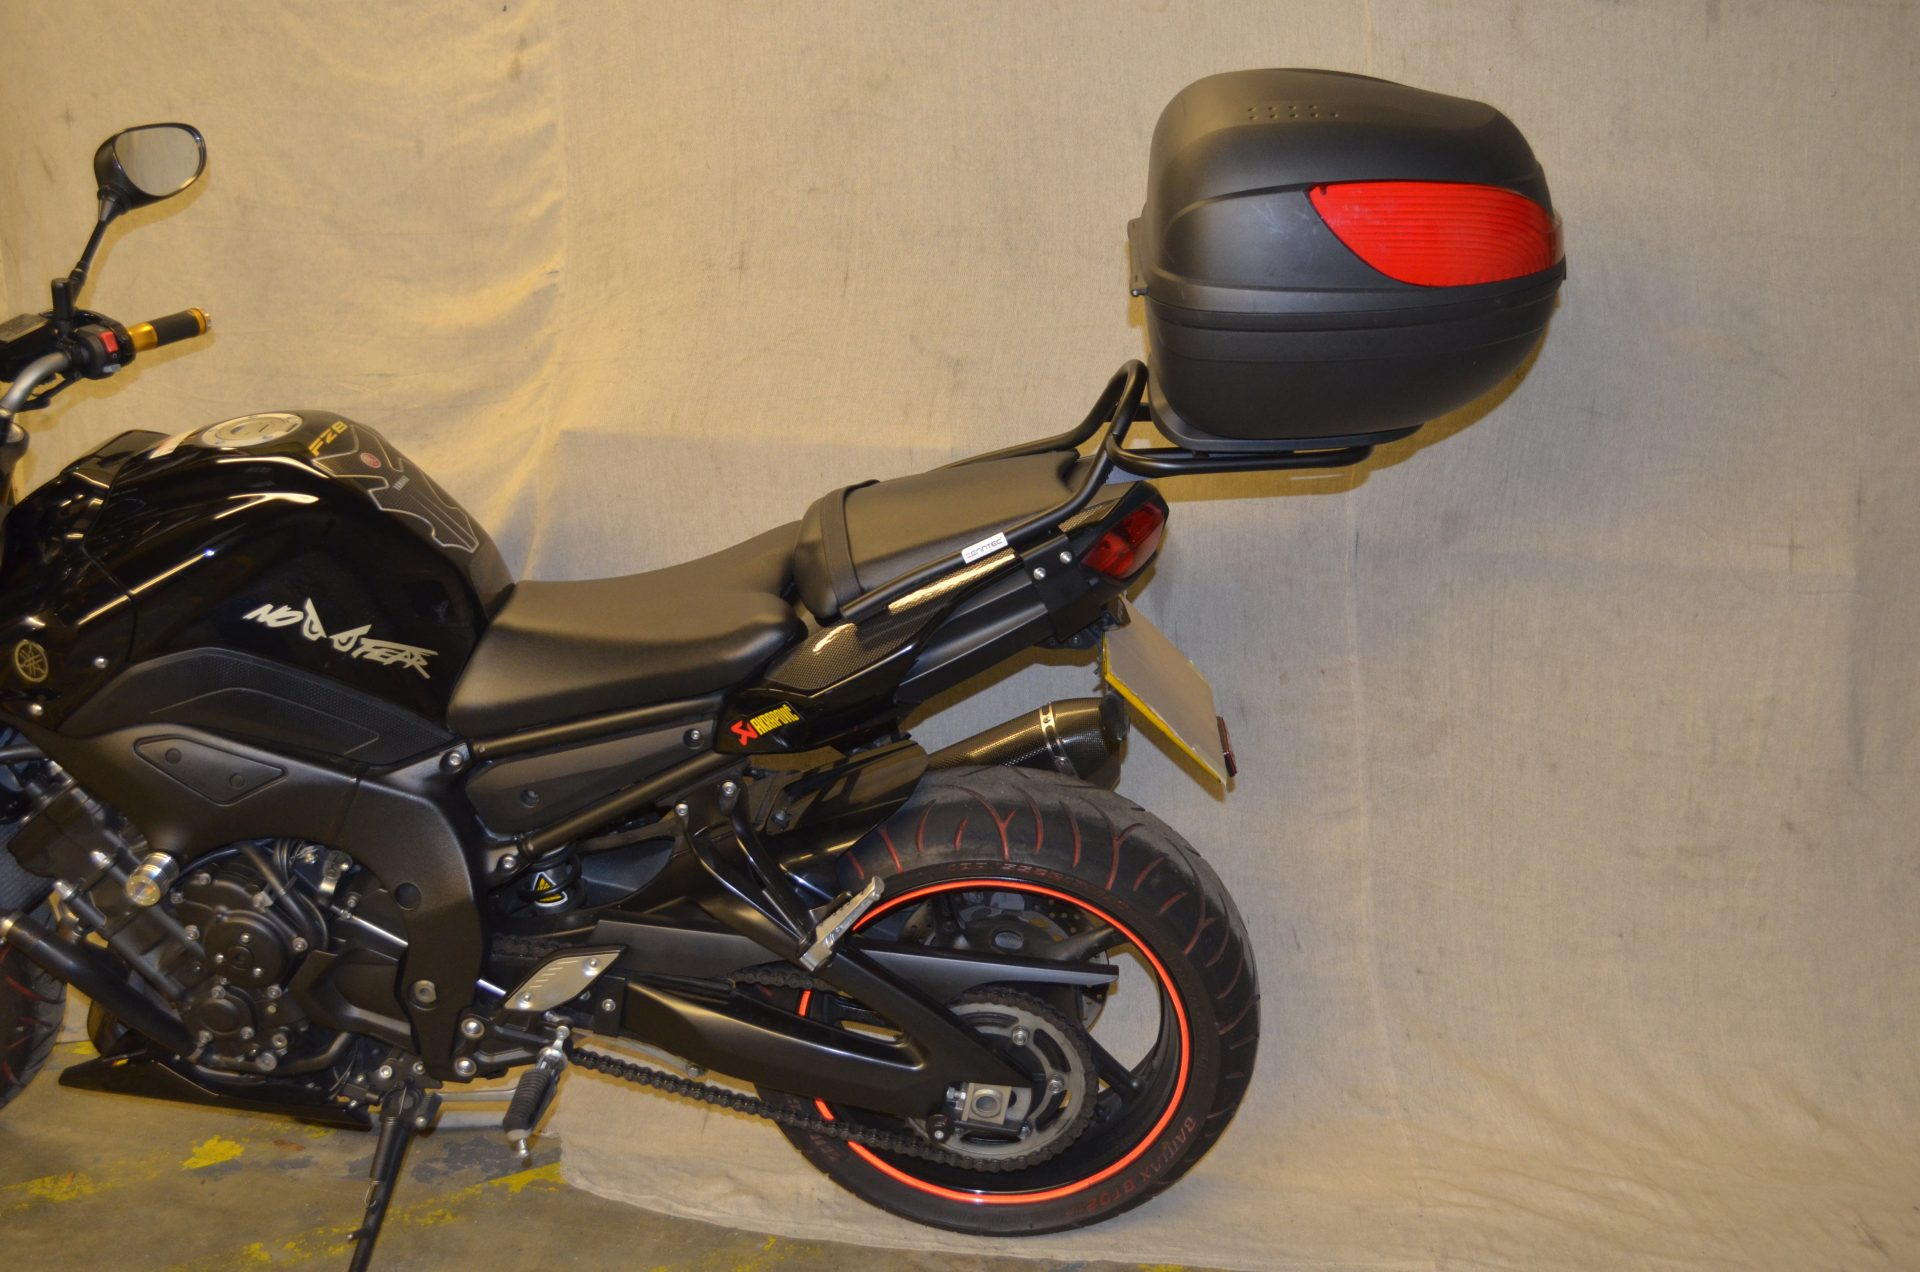 Yamaha FZ8 Luggage Carrier/Top Box Rack In Black